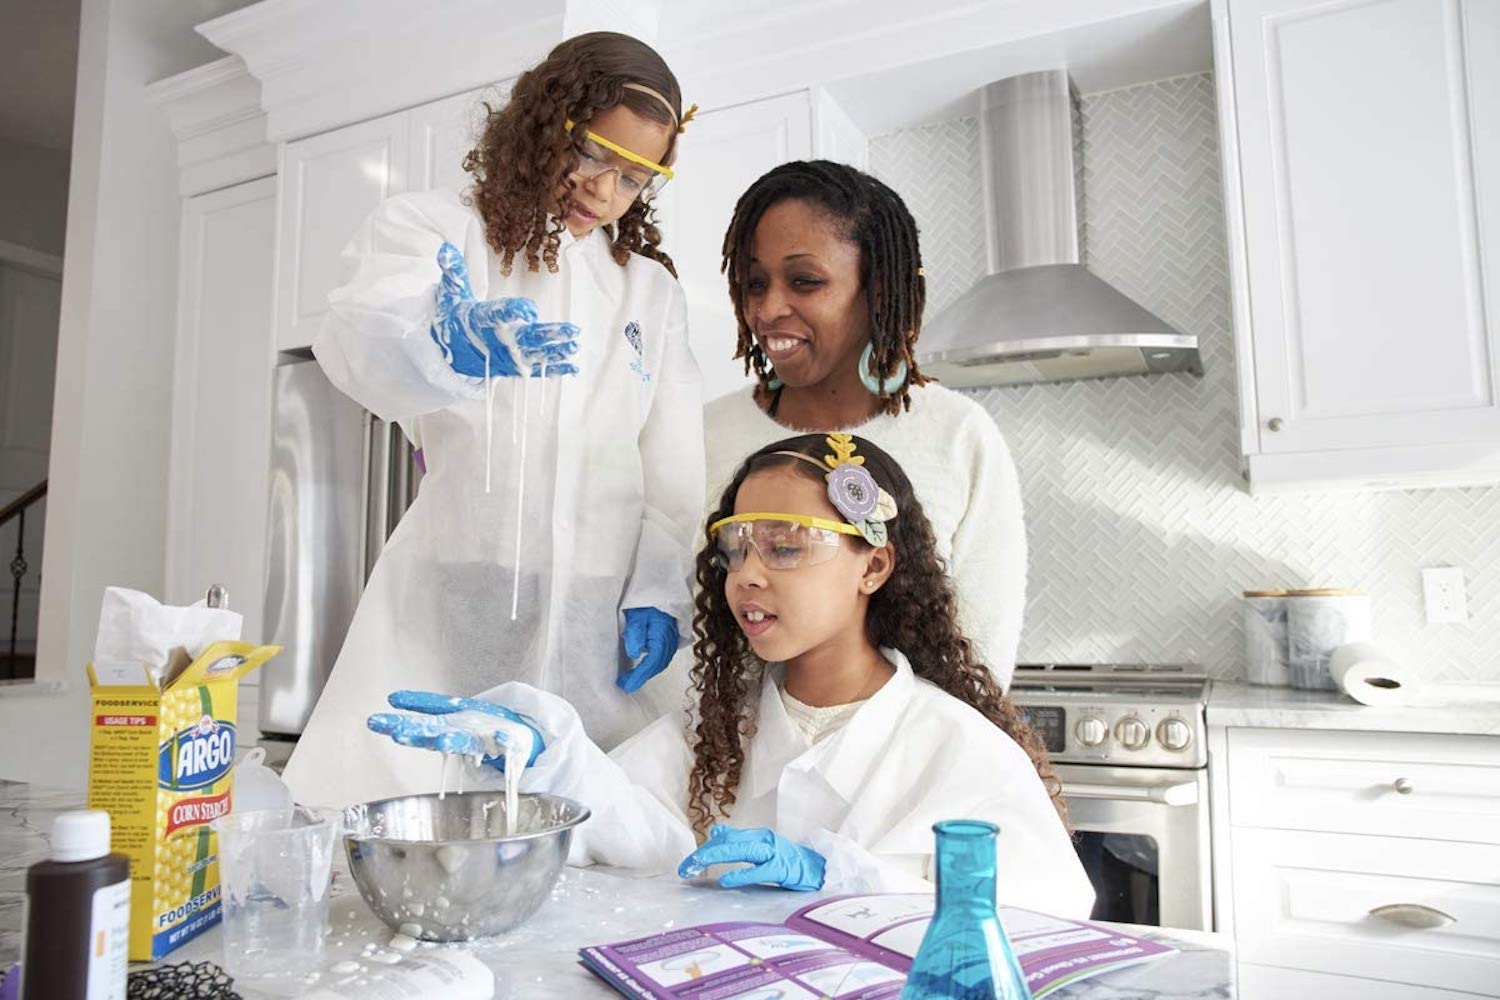 A woman and her two daughters wearing white lab coats and mixing goo in a bowl in a kitchen